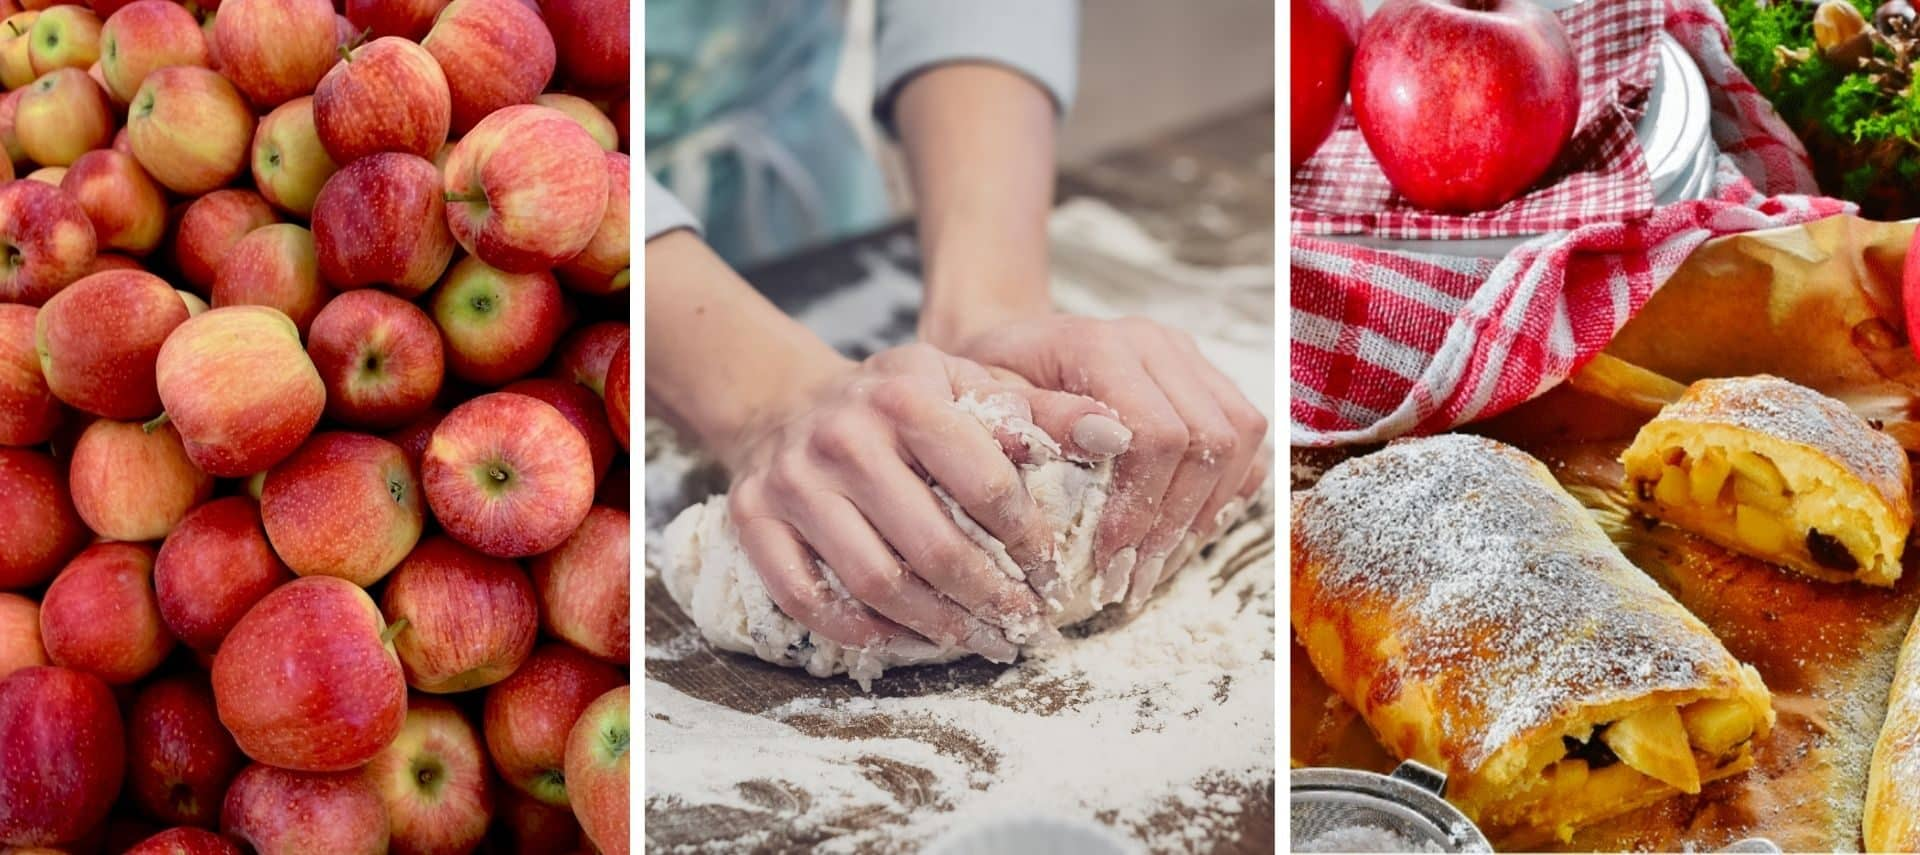 Pile of red apples, person kneading dough, baked apple strudel